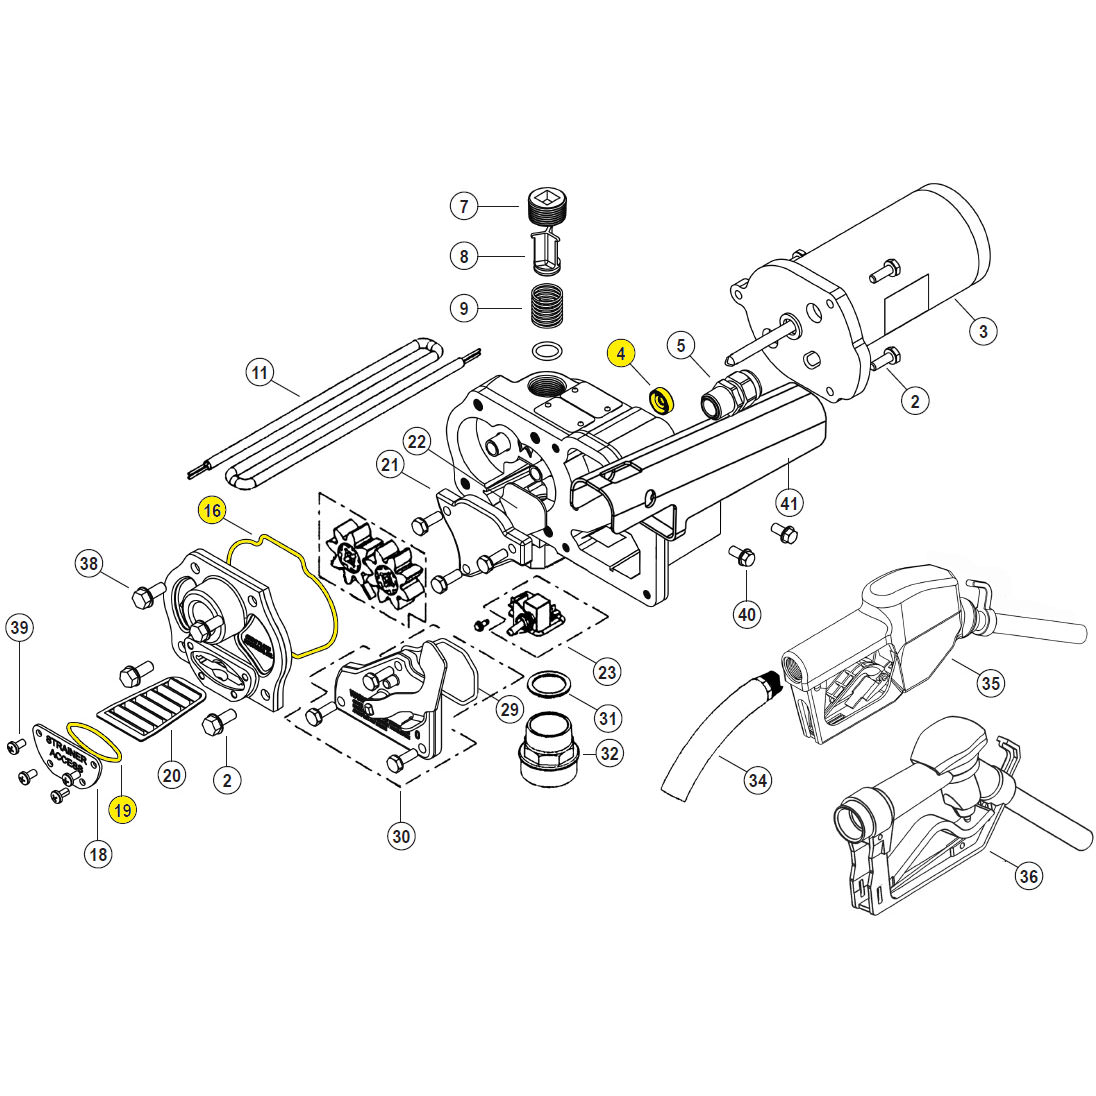 hannay reels parts diagram  hannay  get free image about